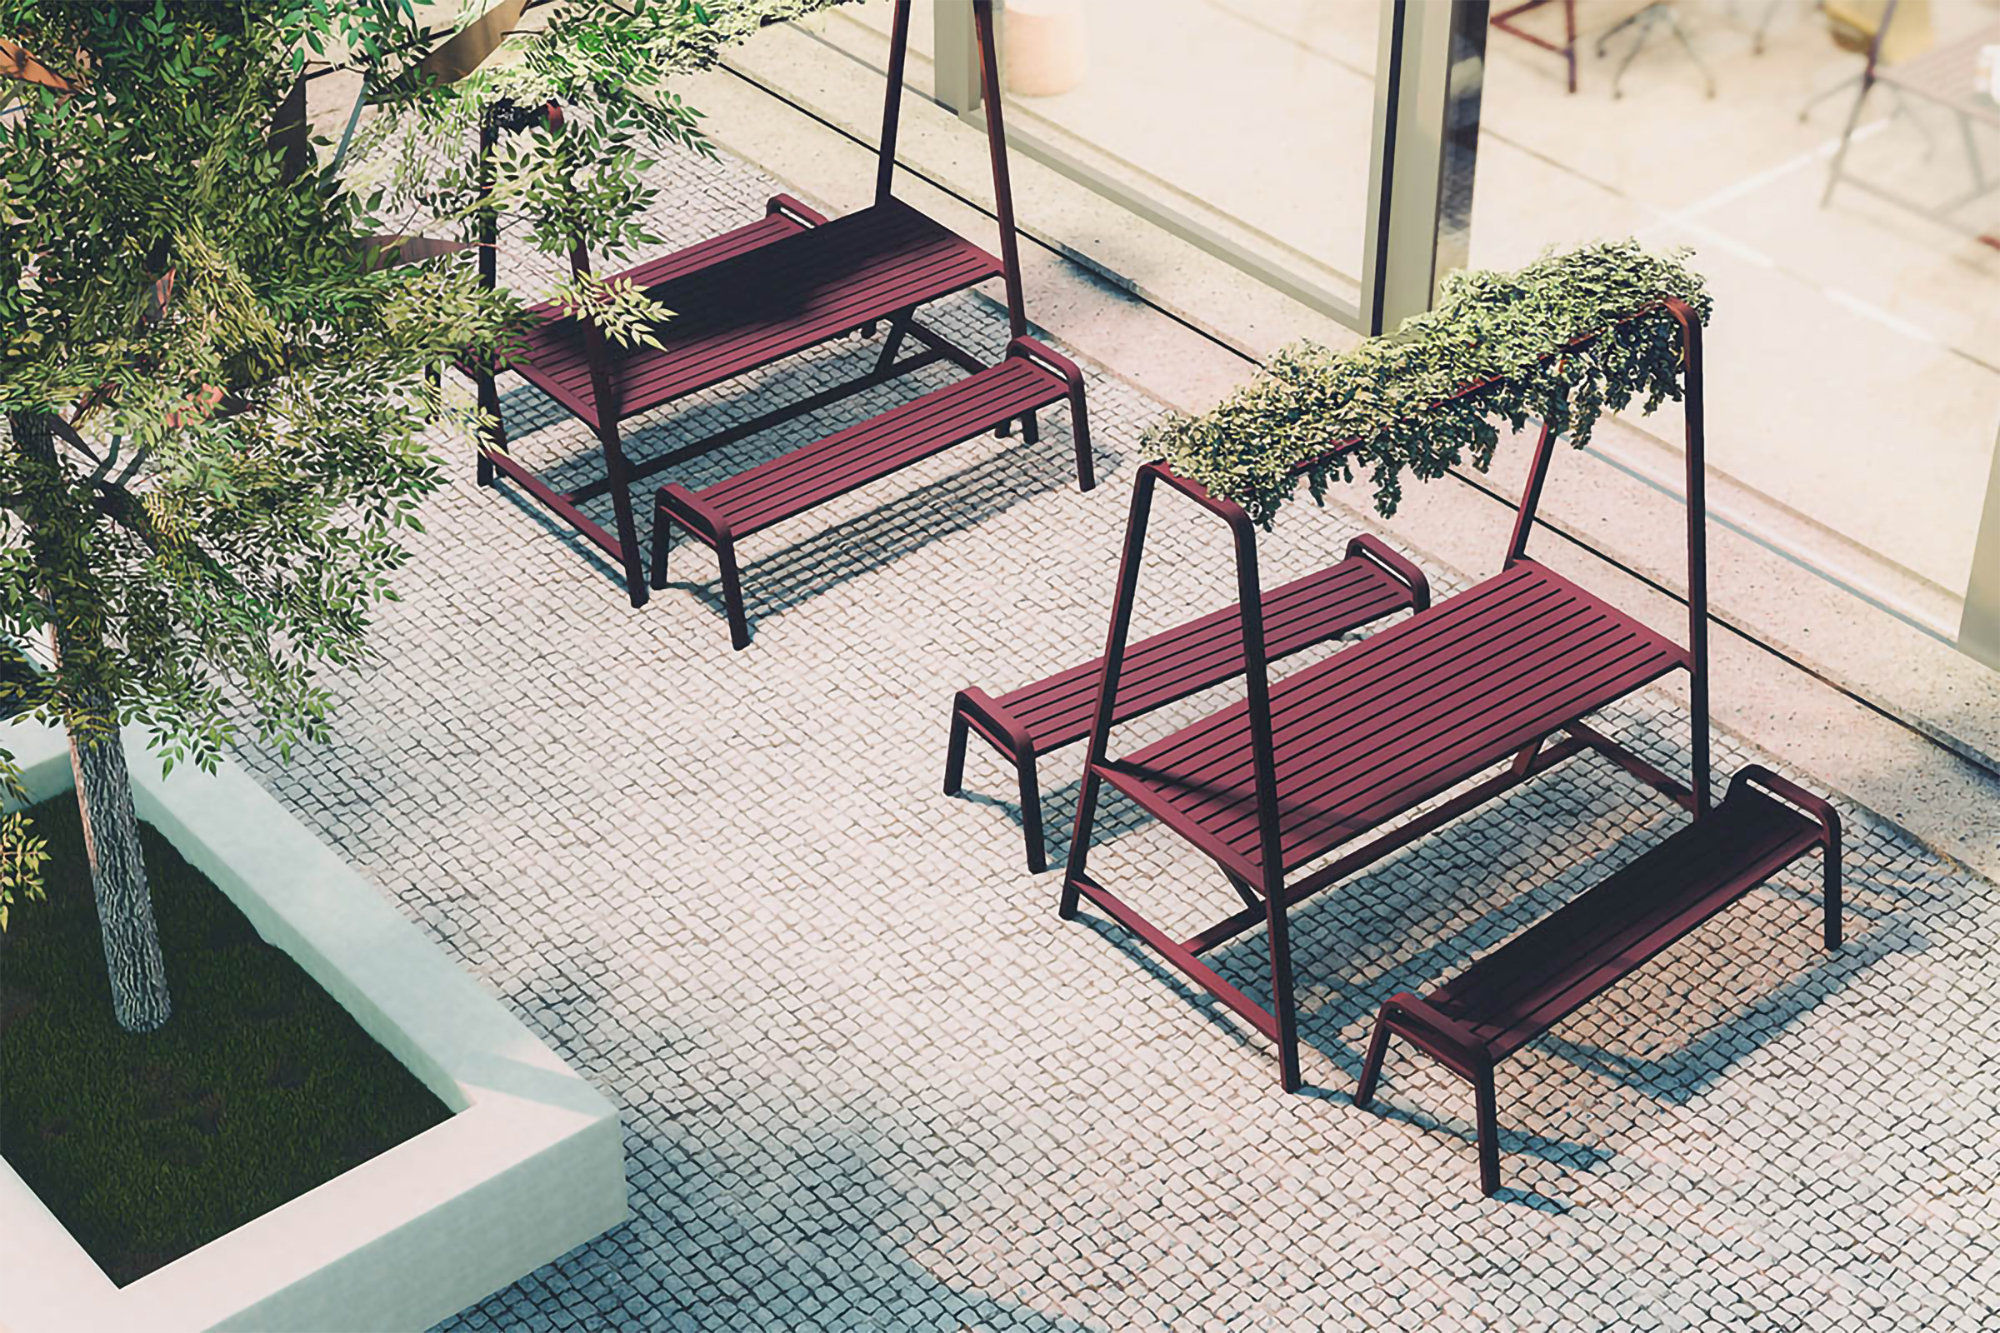 Like all products shown here, the Osti Cloud by Frovi can be used outdoors or indoors for a truly biophilic work environment.